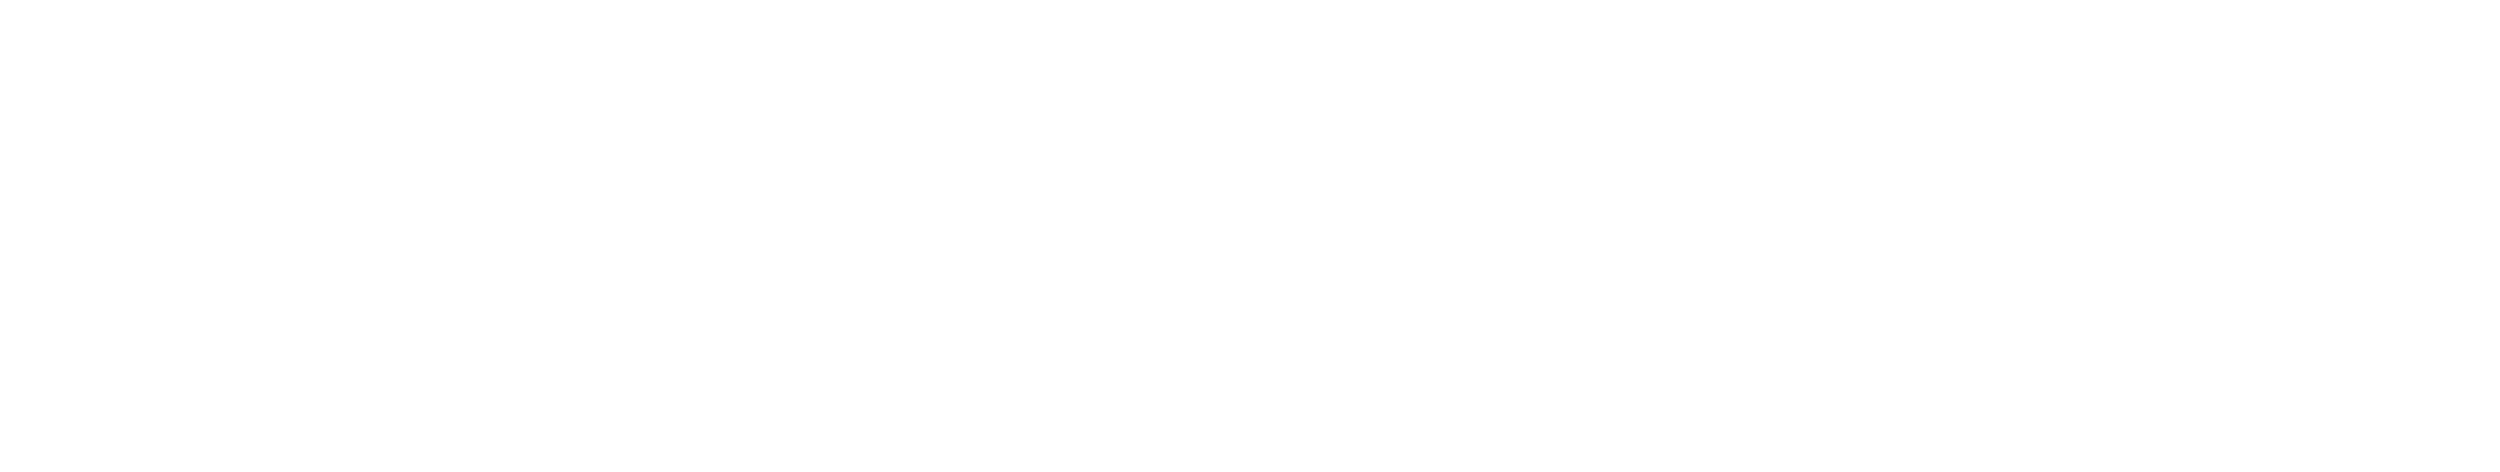 takeda-logo-simple-new-dark-01.png